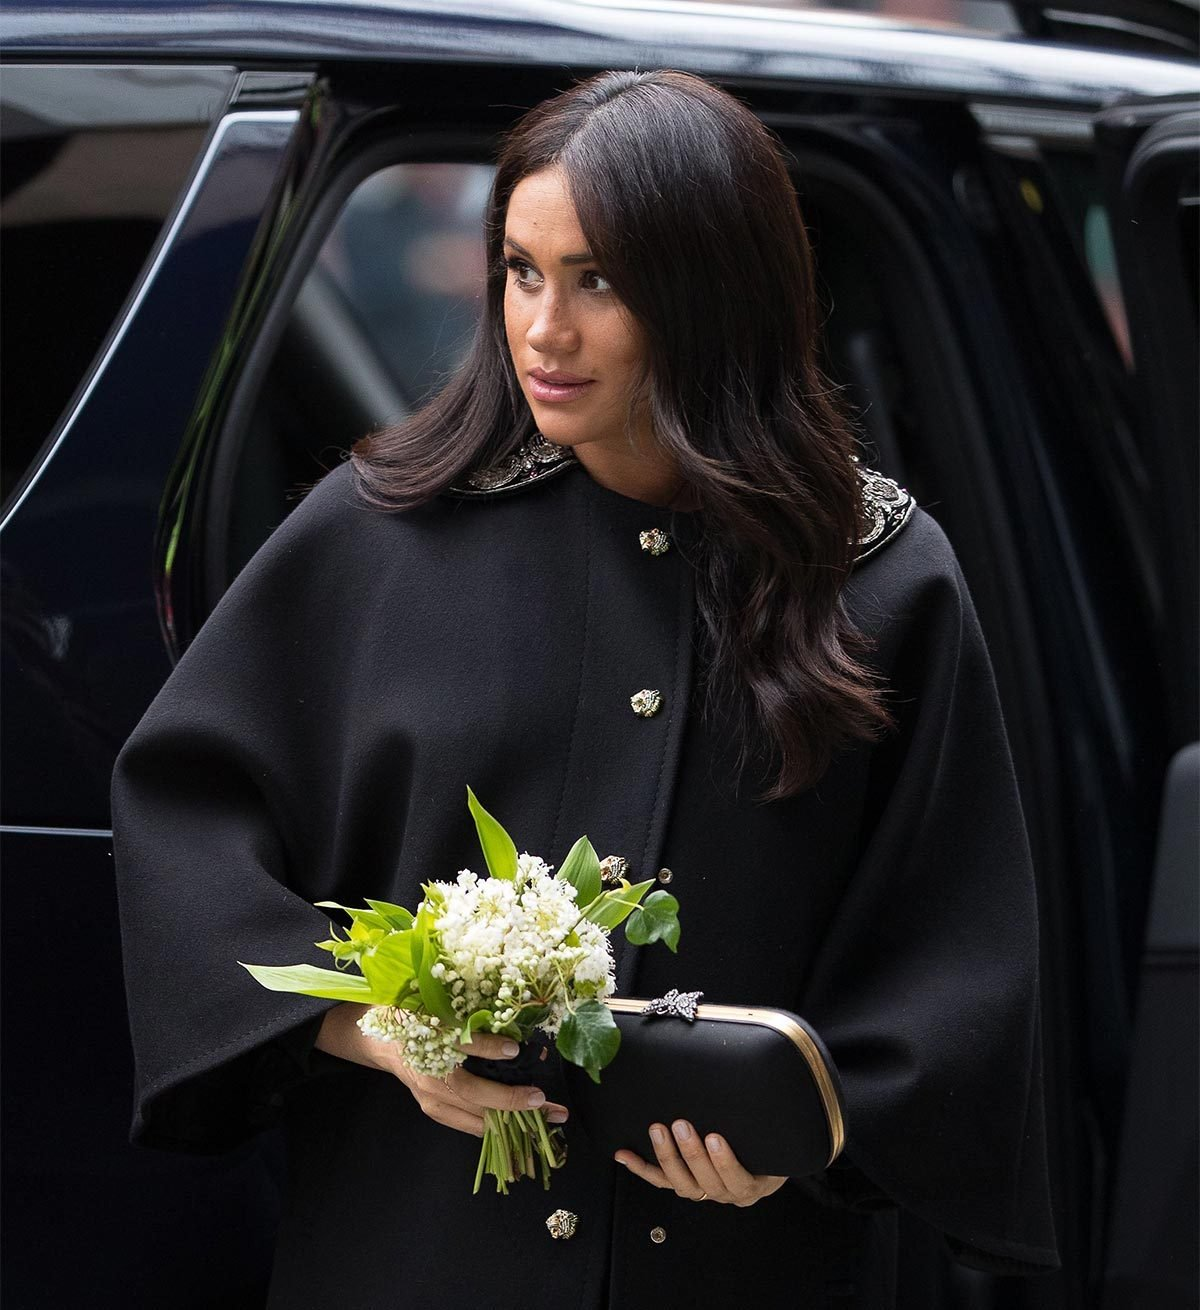 Why Meghan Markle Won't Be Taking Photos After Her Baby's